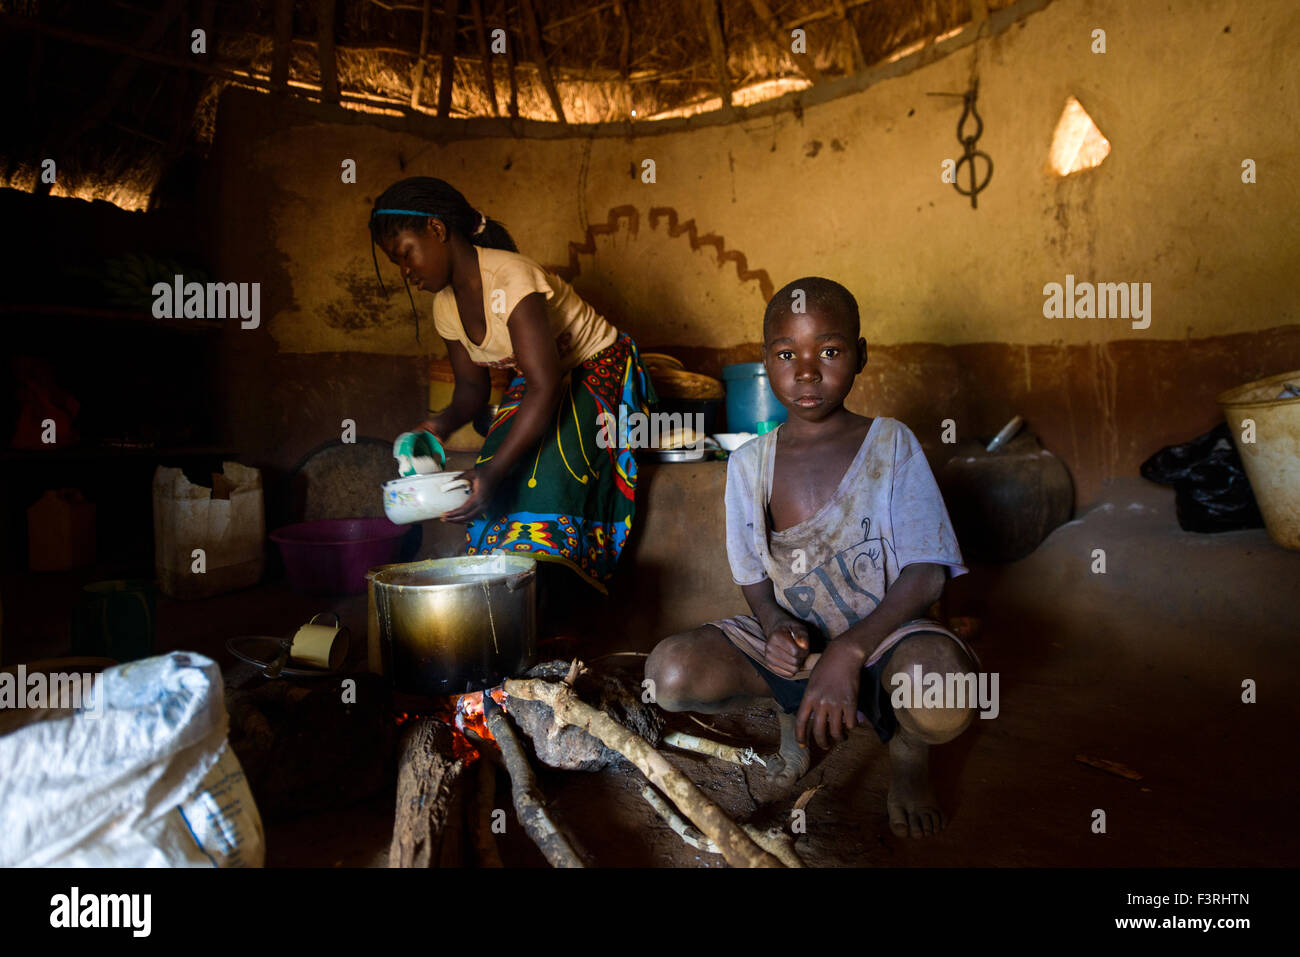 Everyday scene in traditional straw hut, Mozambique, Africa - Stock Image